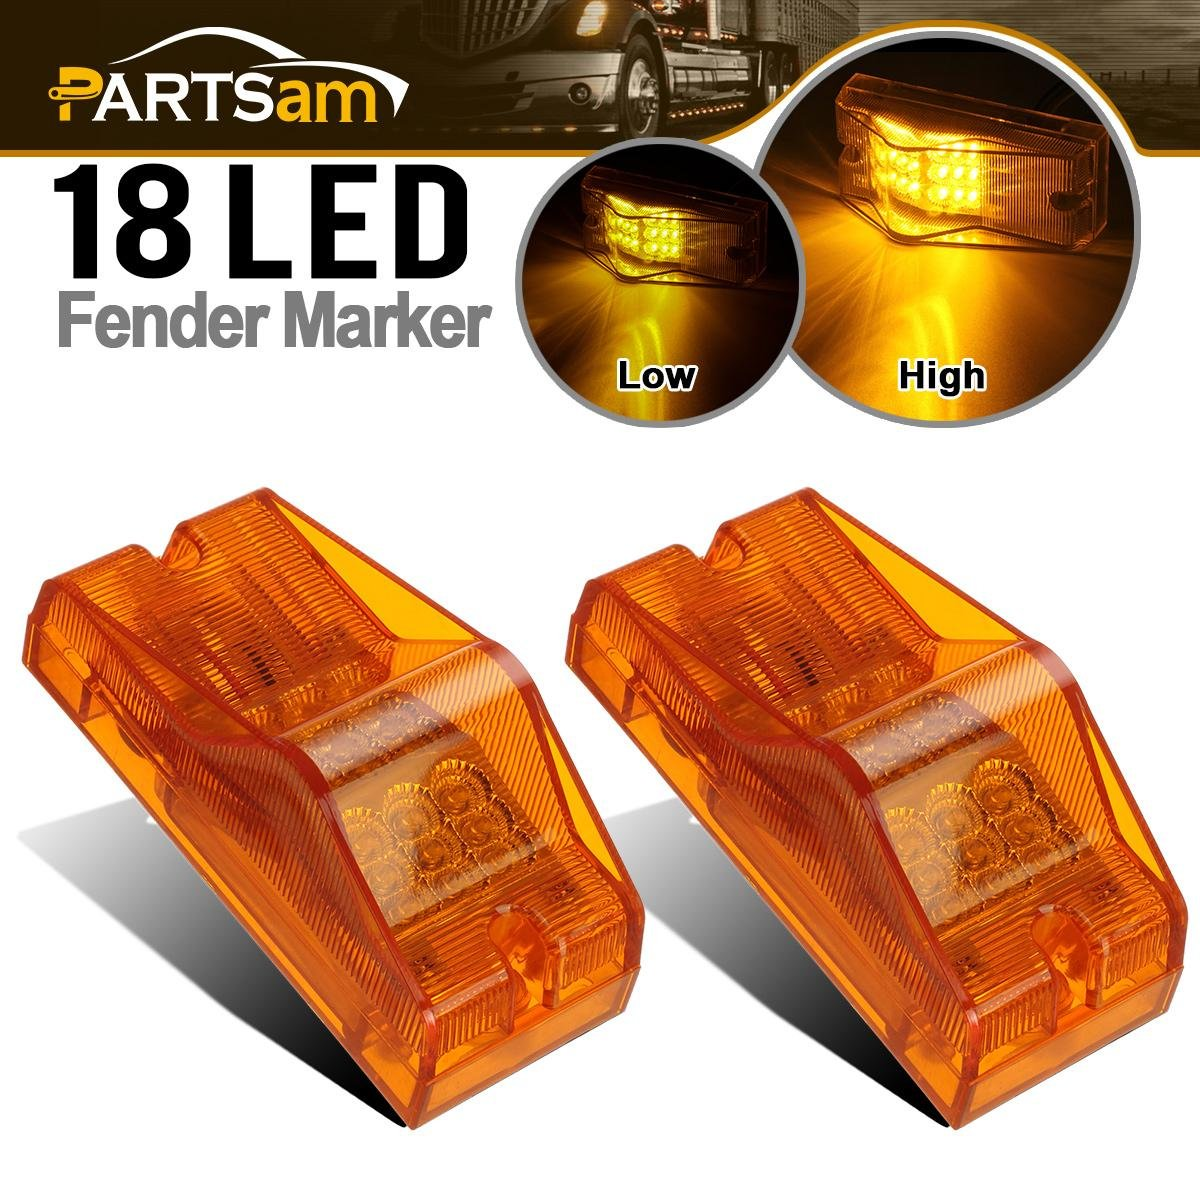 Partsam 2x Amber 18LED Turn Clearance w Reflector Side Turn Marker Light For Freightliner Cab